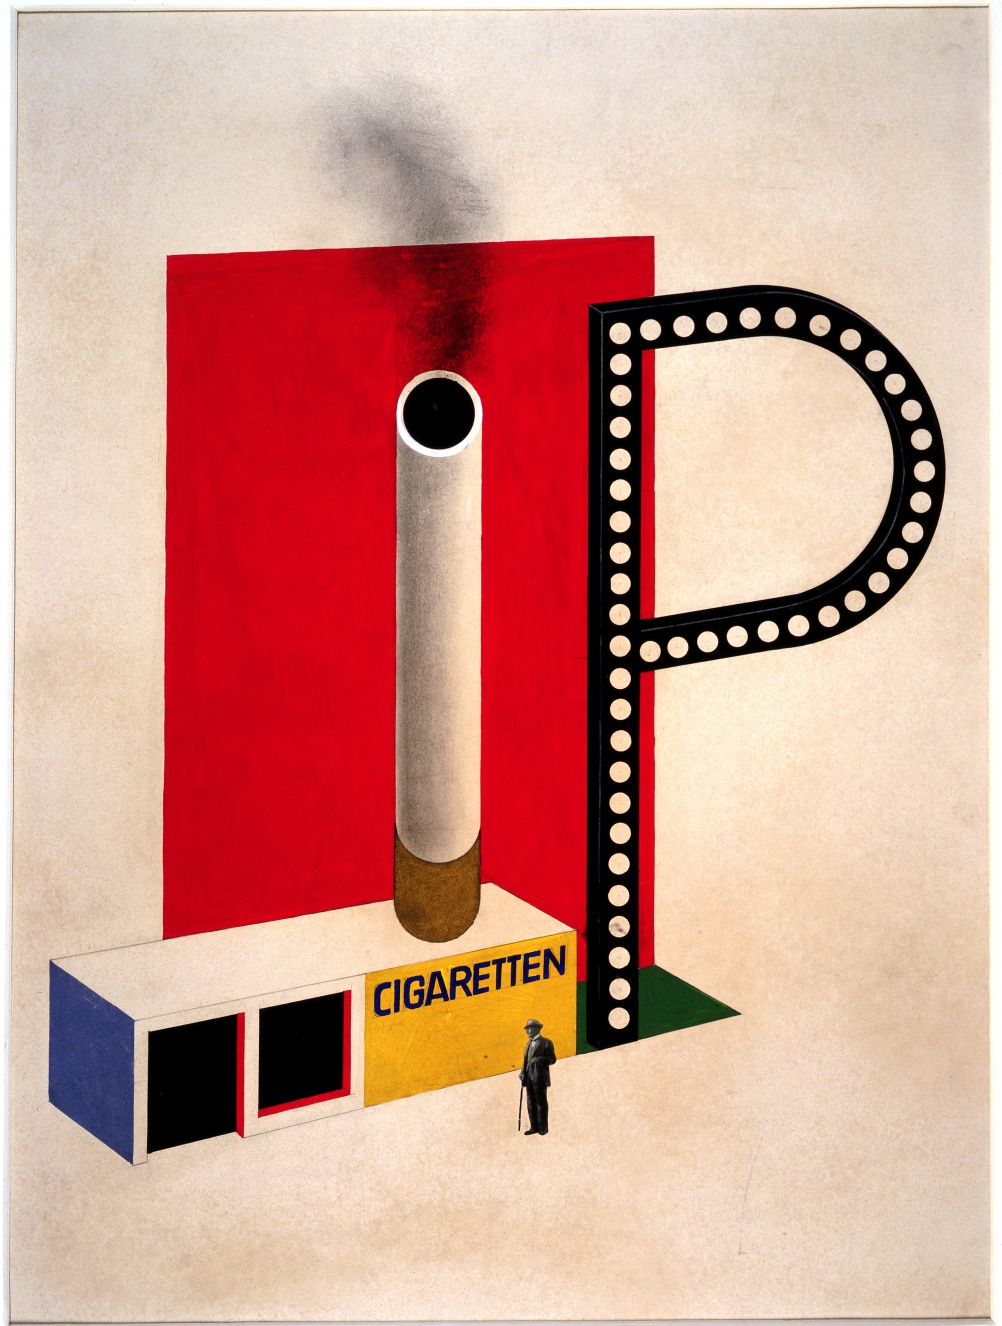 Herbert Bayer, Design for a Cigarette Pavilion, 1924